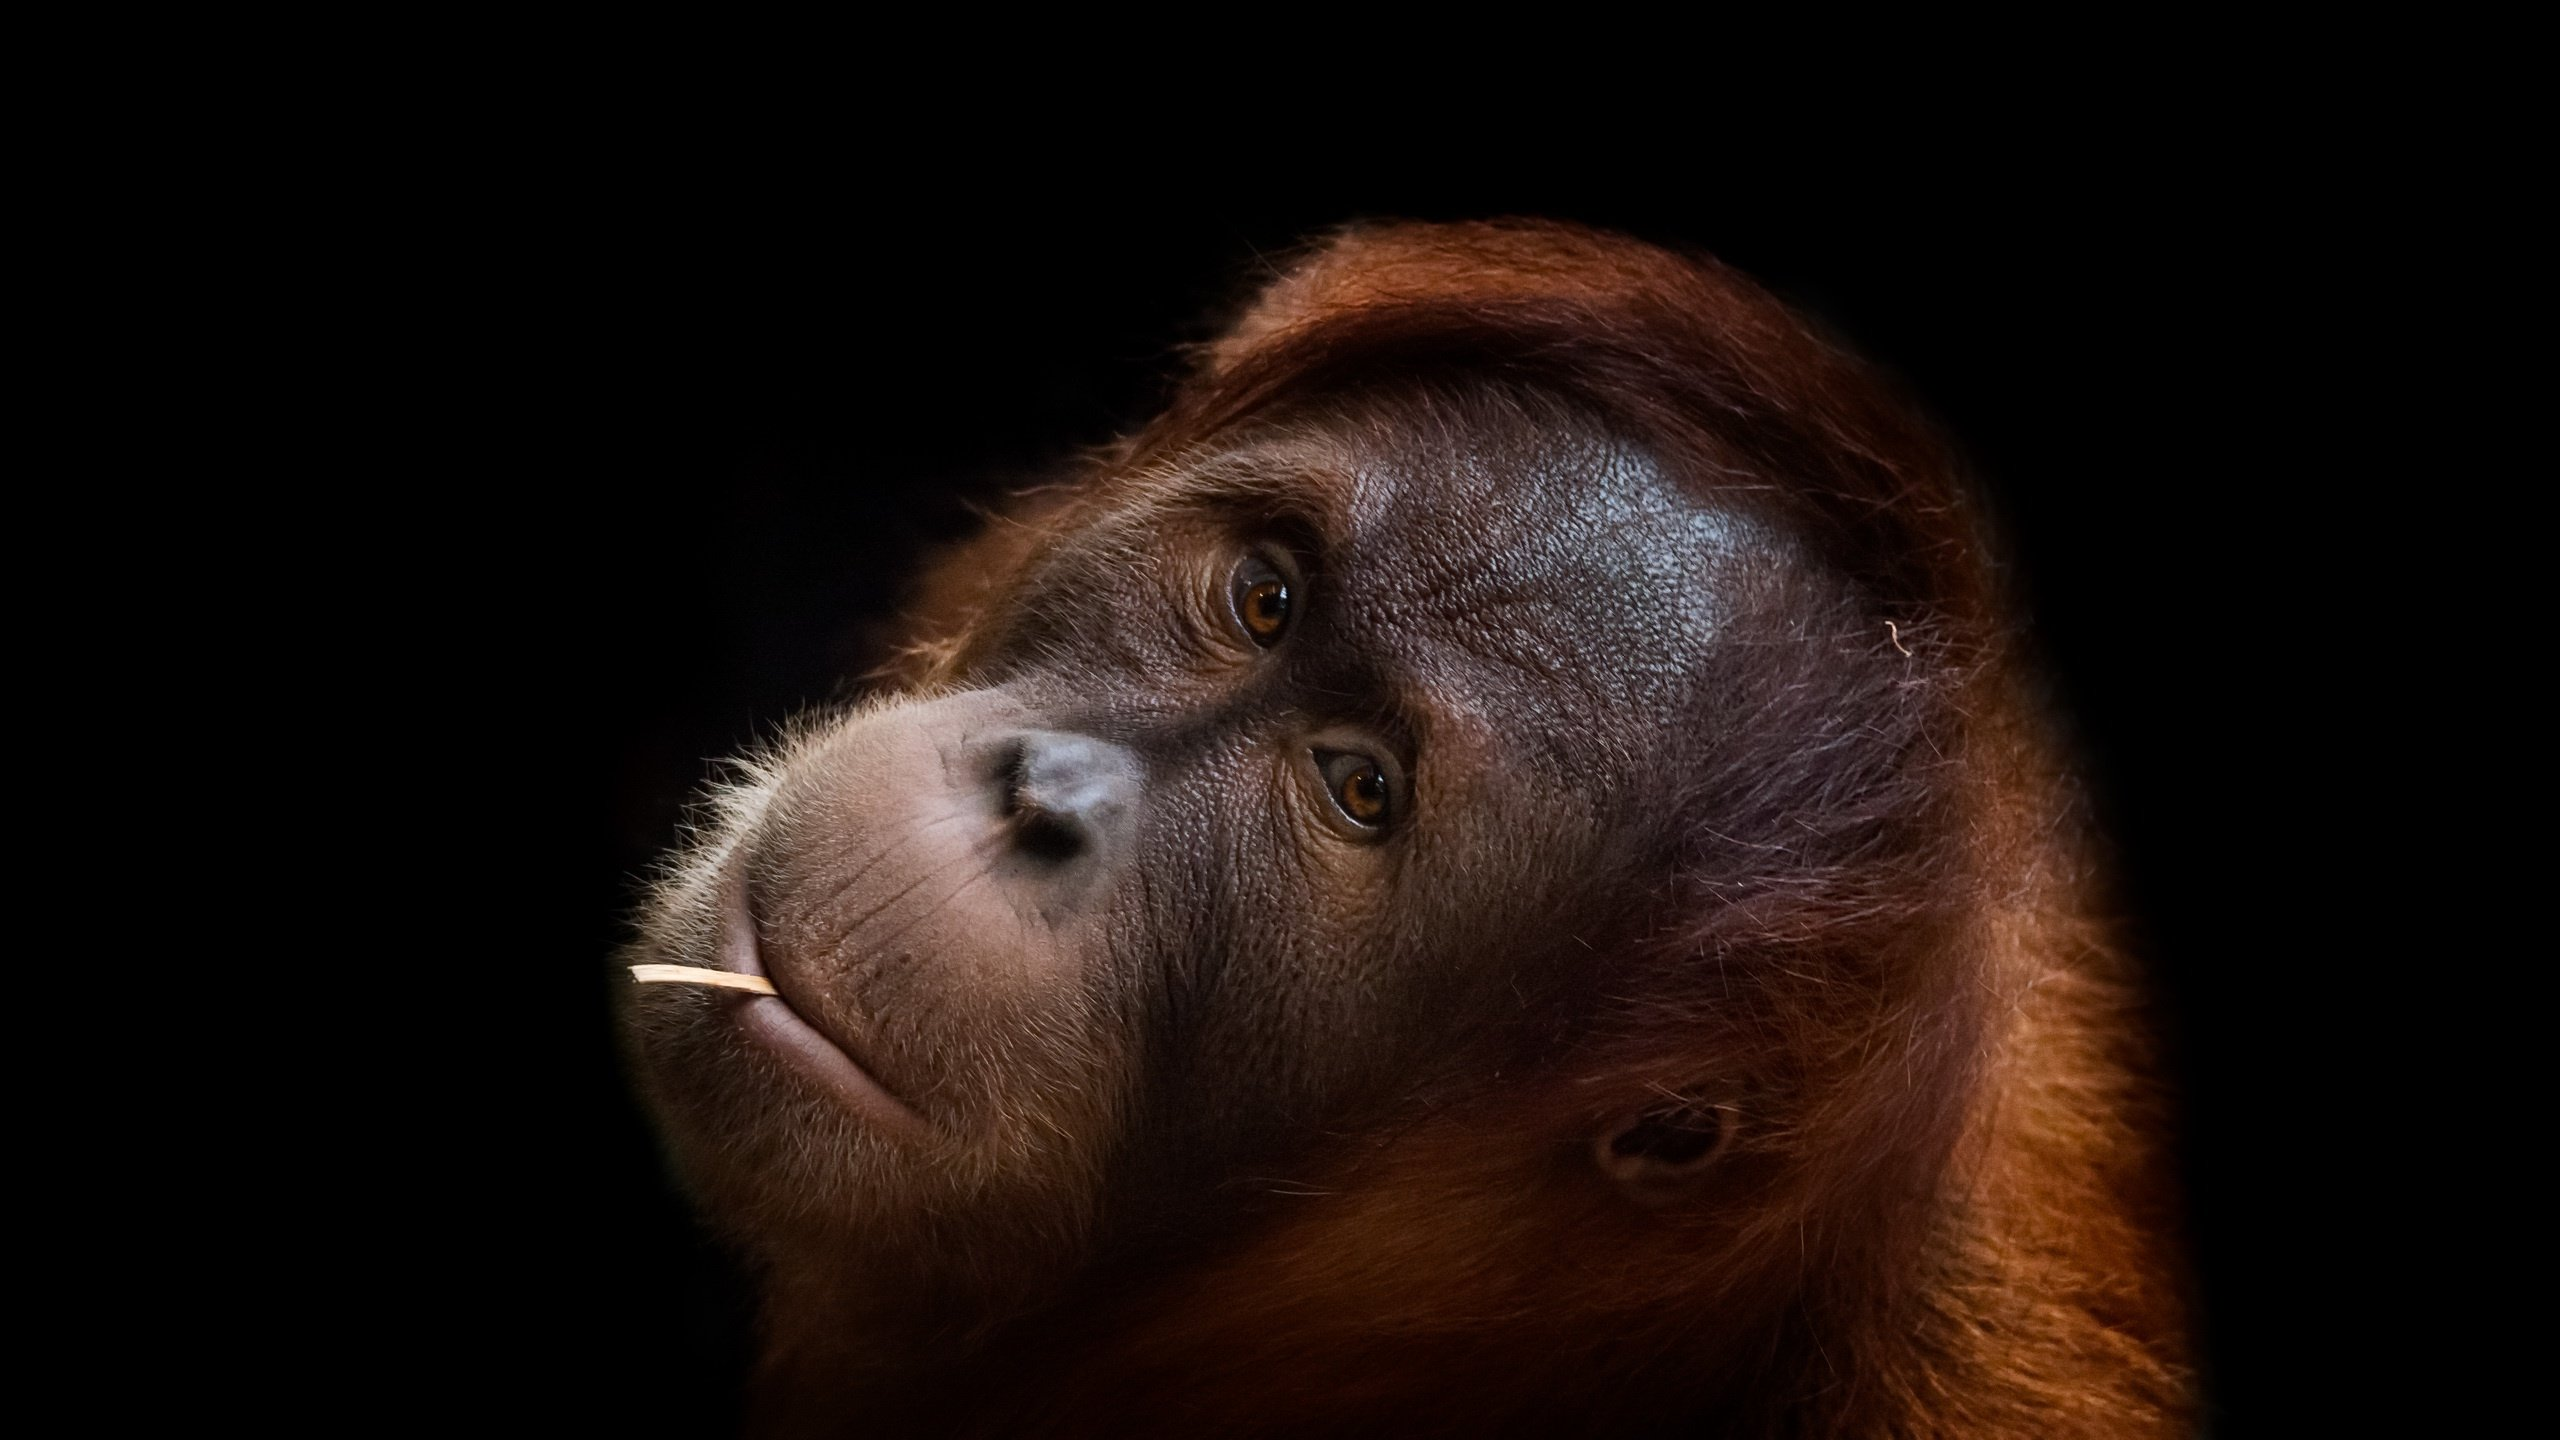 High resolution Orangutan hd 2560x1440 wallpaper ID:70029 for computer